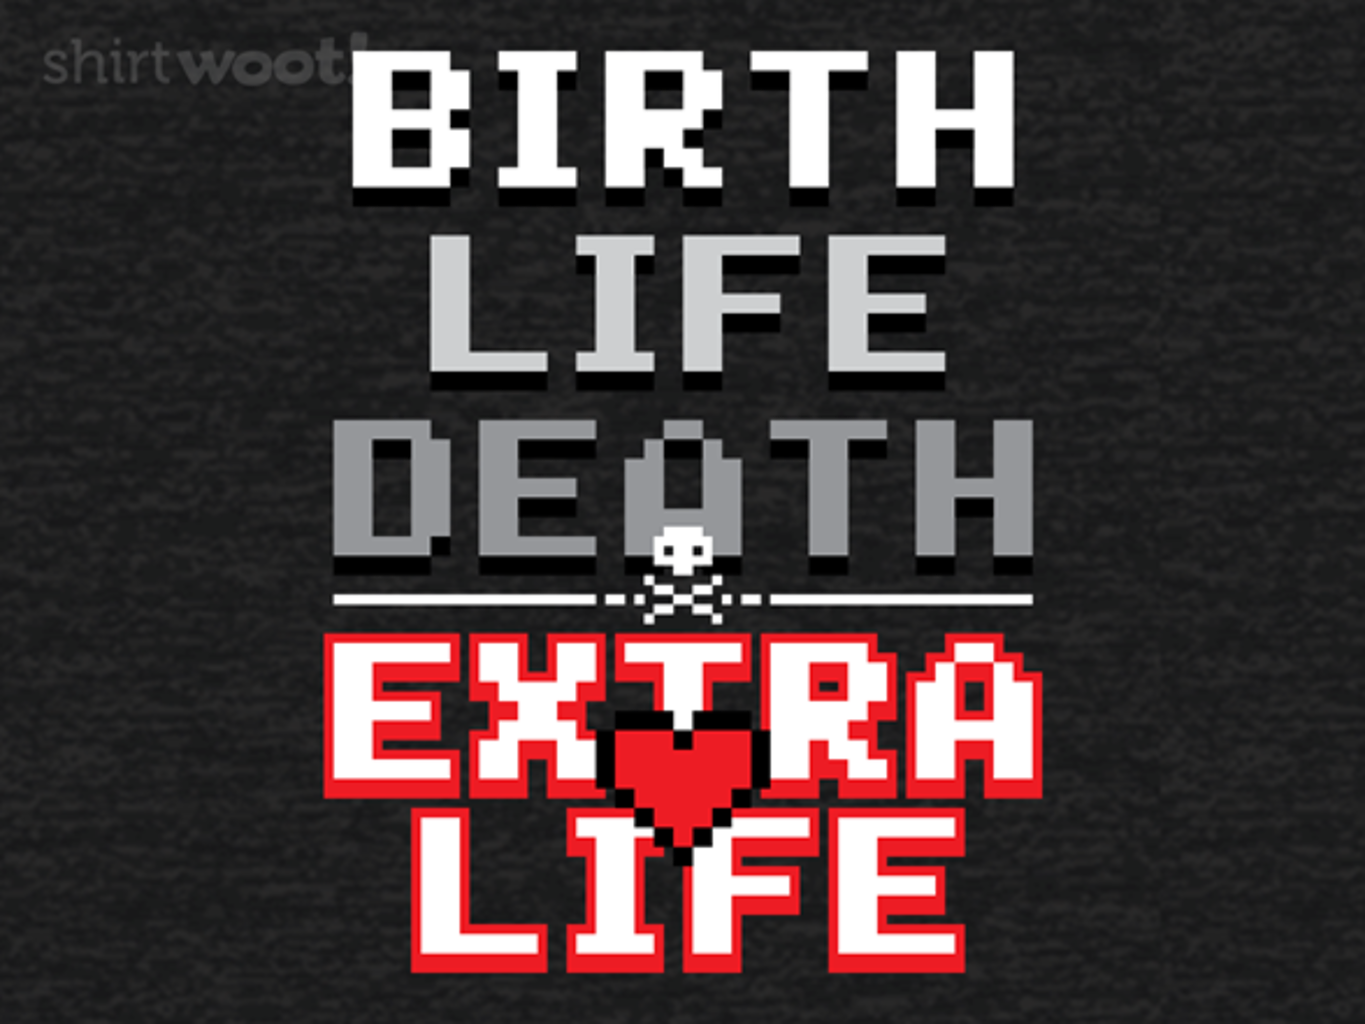 Woot!: Extra Life!